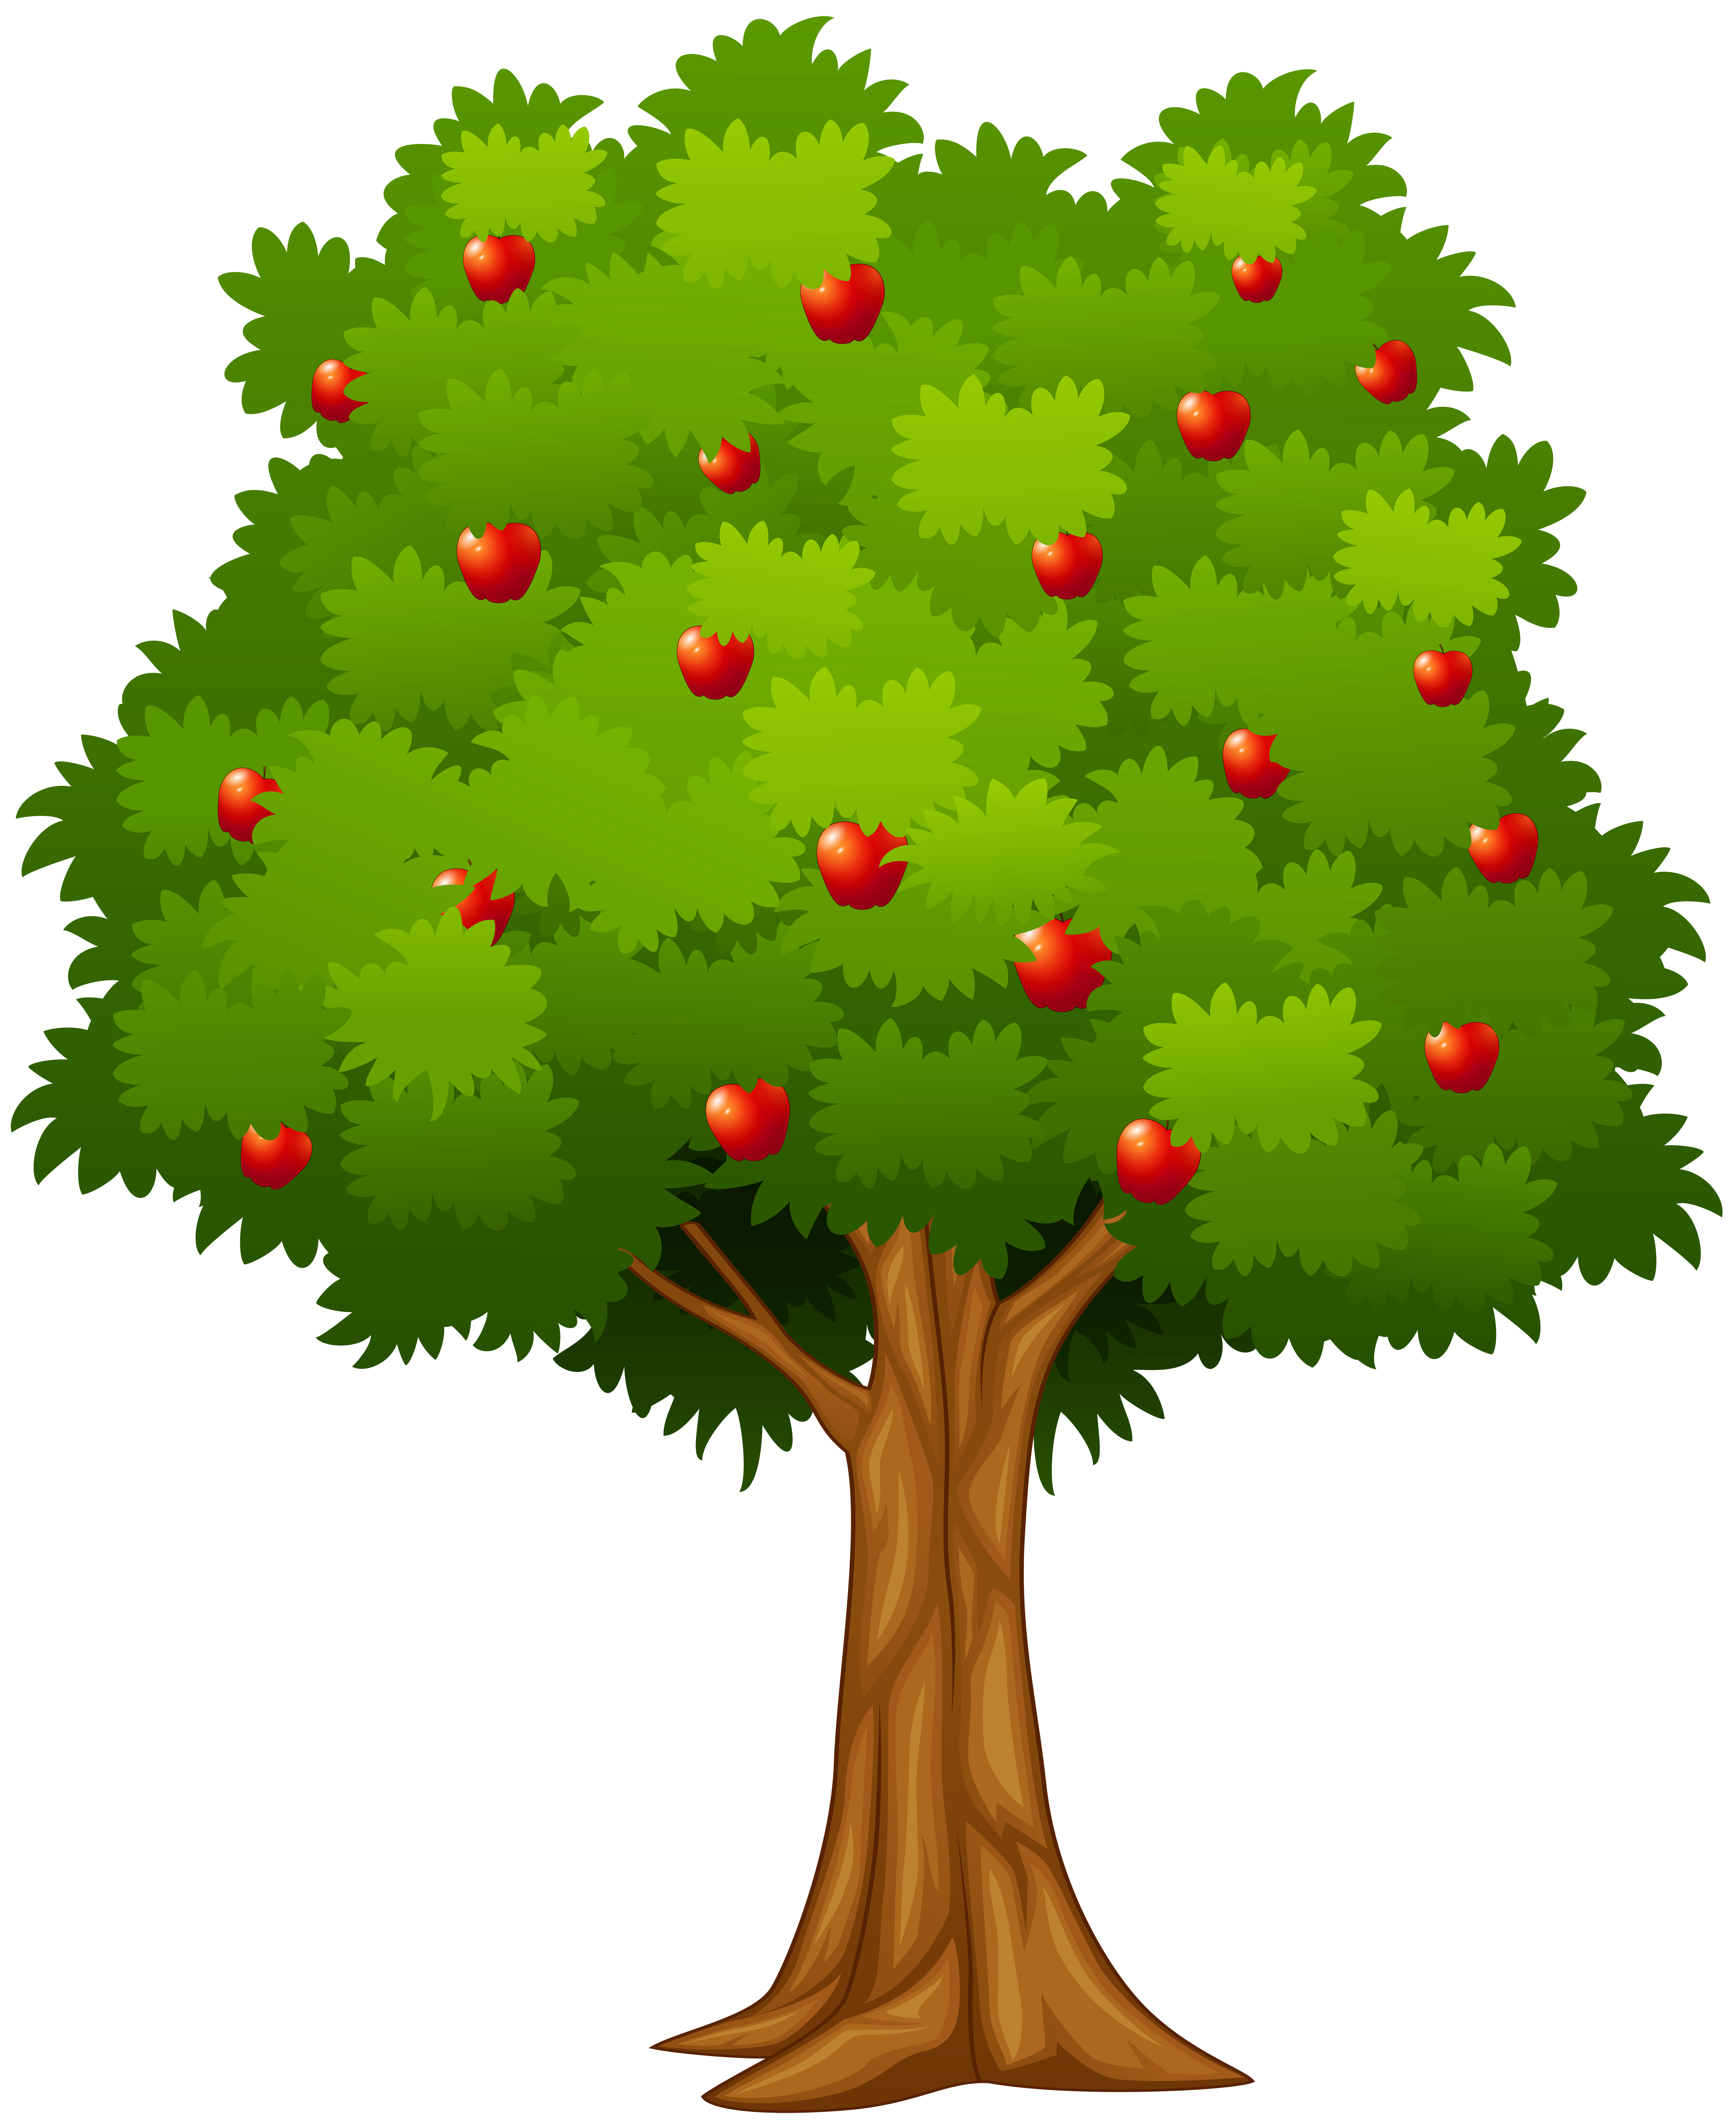 Apple tree png. Clip art image gallery